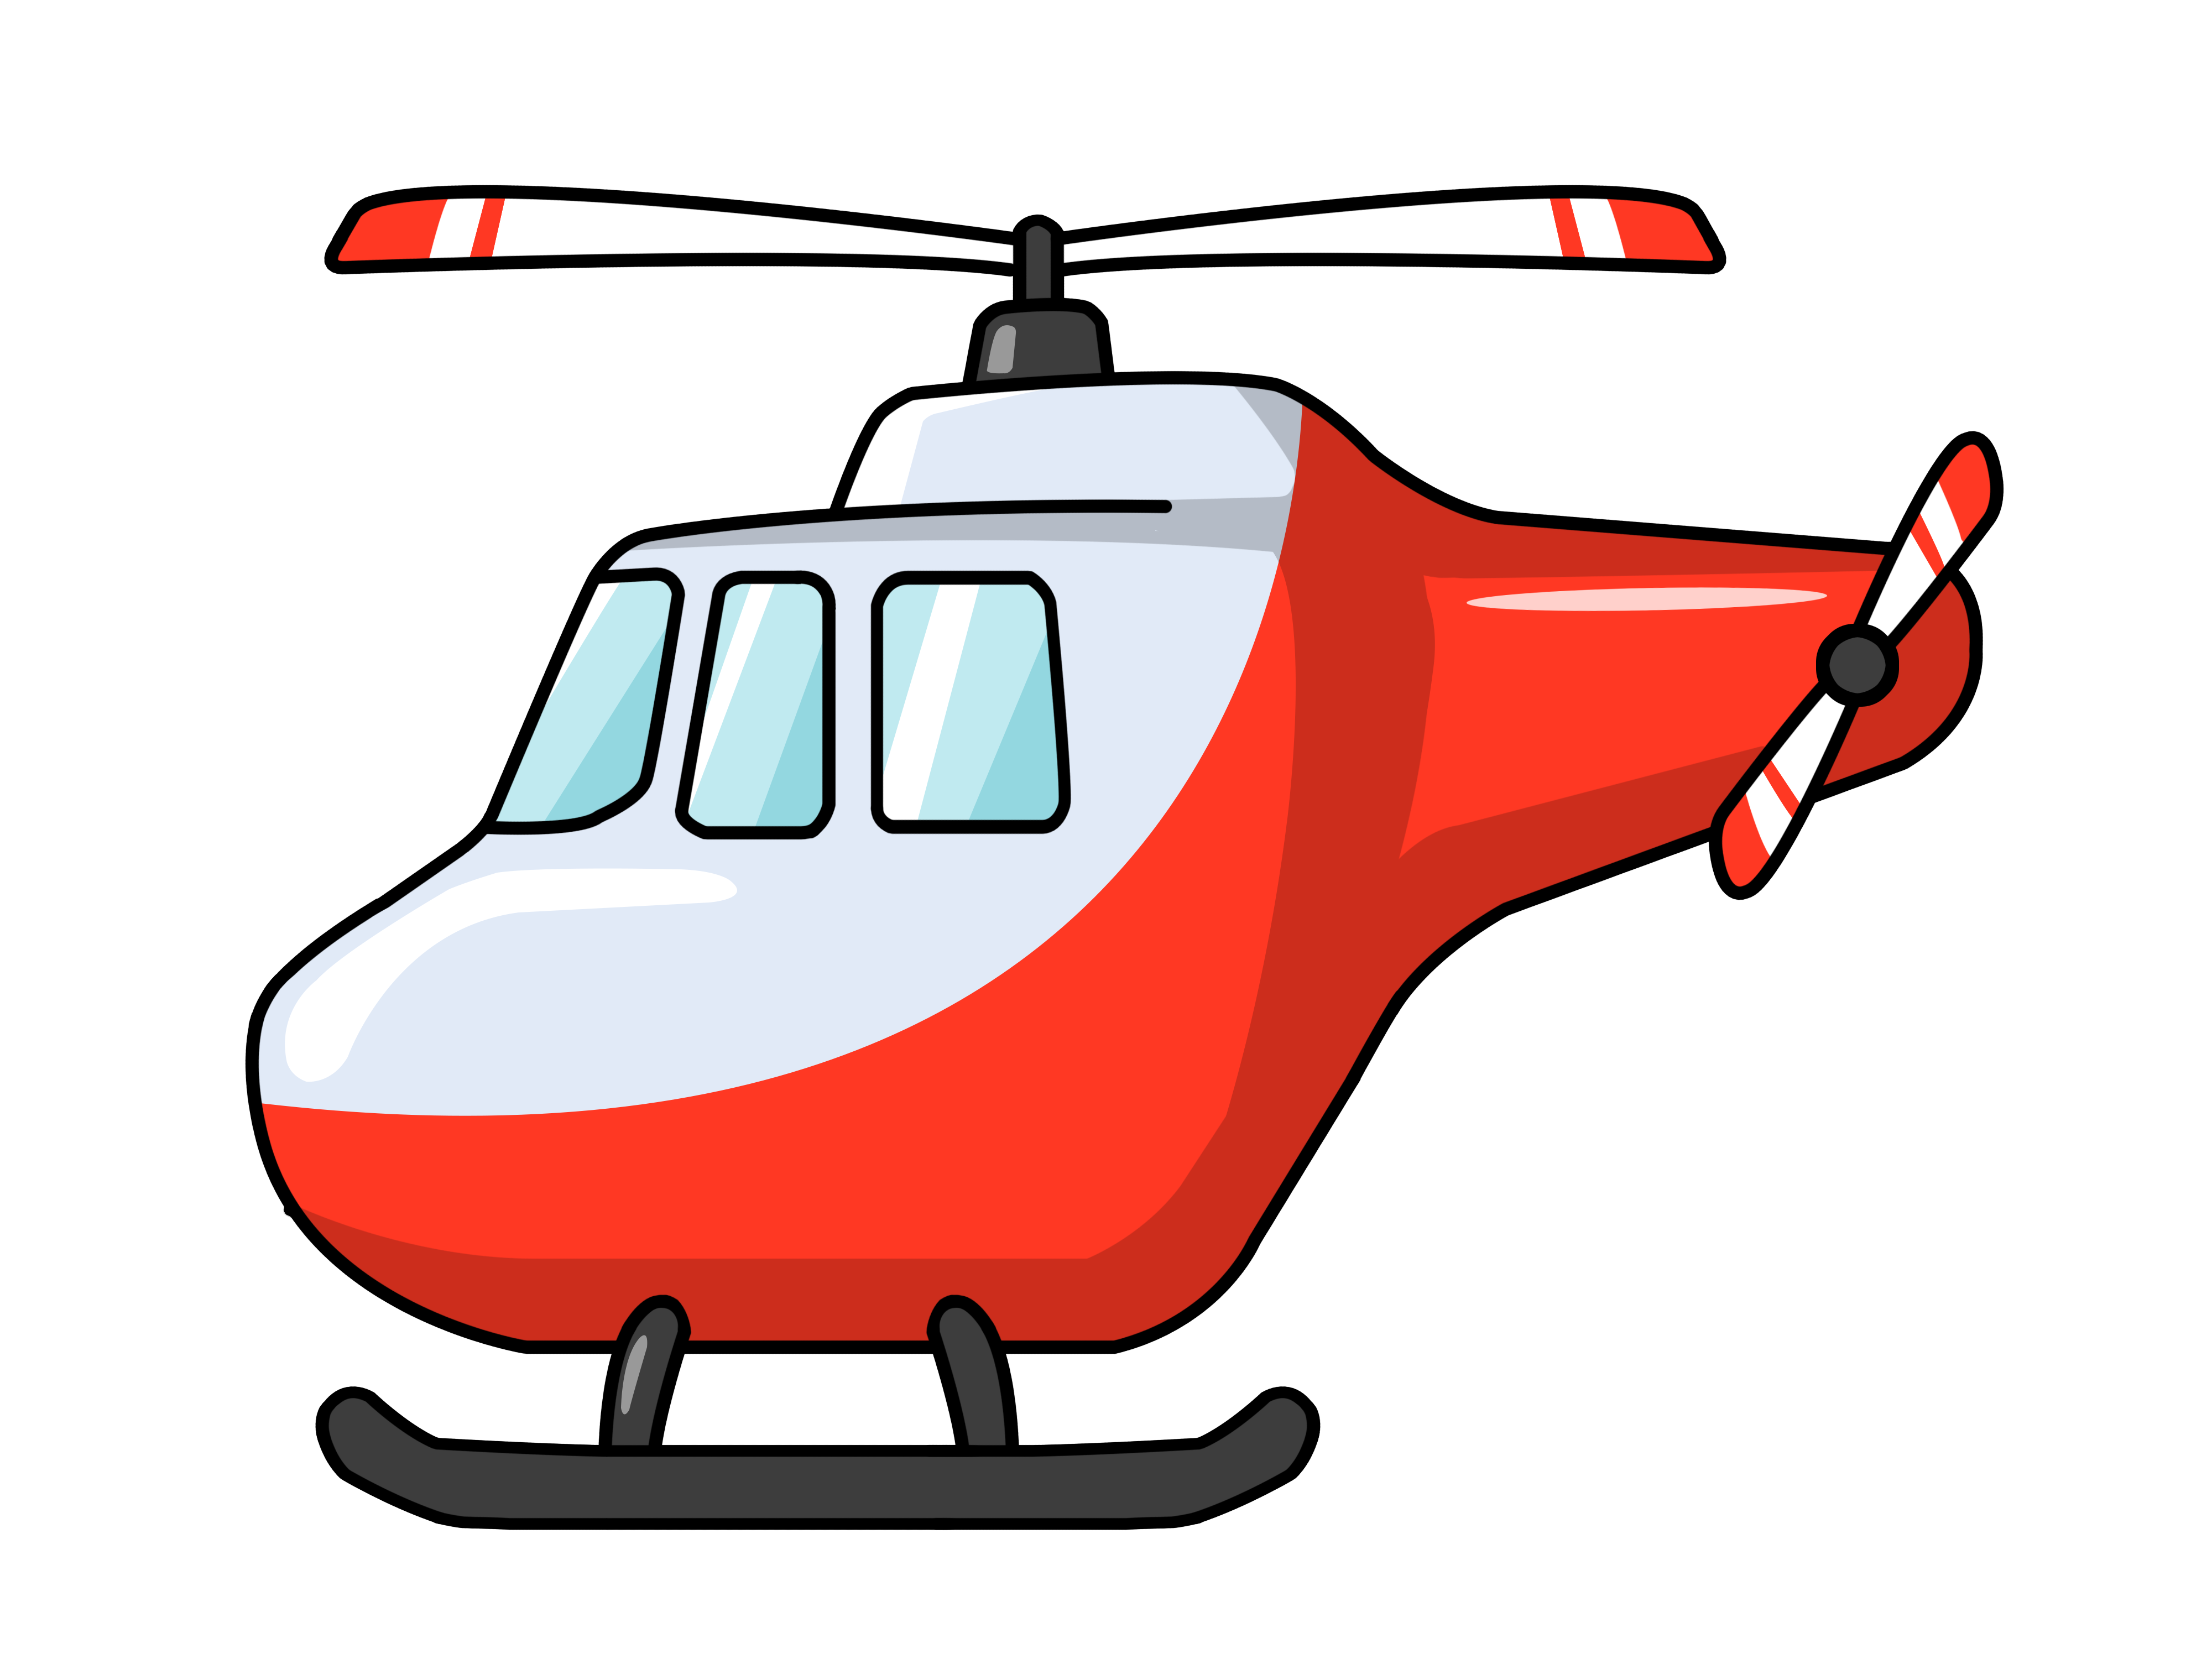 Helicopter clipart #12, Download drawings